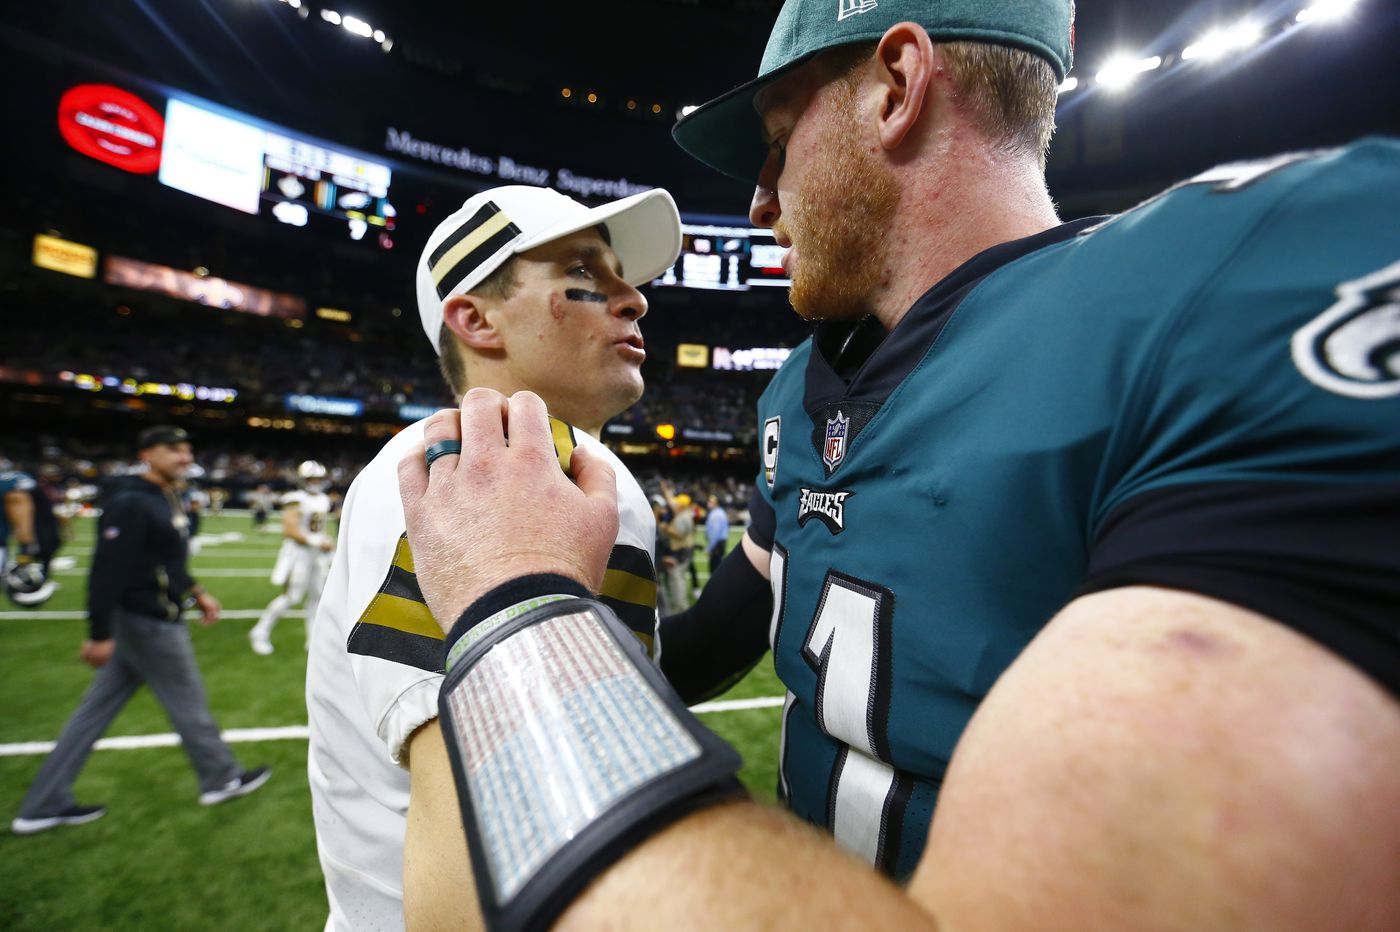 Can Eagles build for the future around Carson Wentz and still contend for a Super Bowl now?